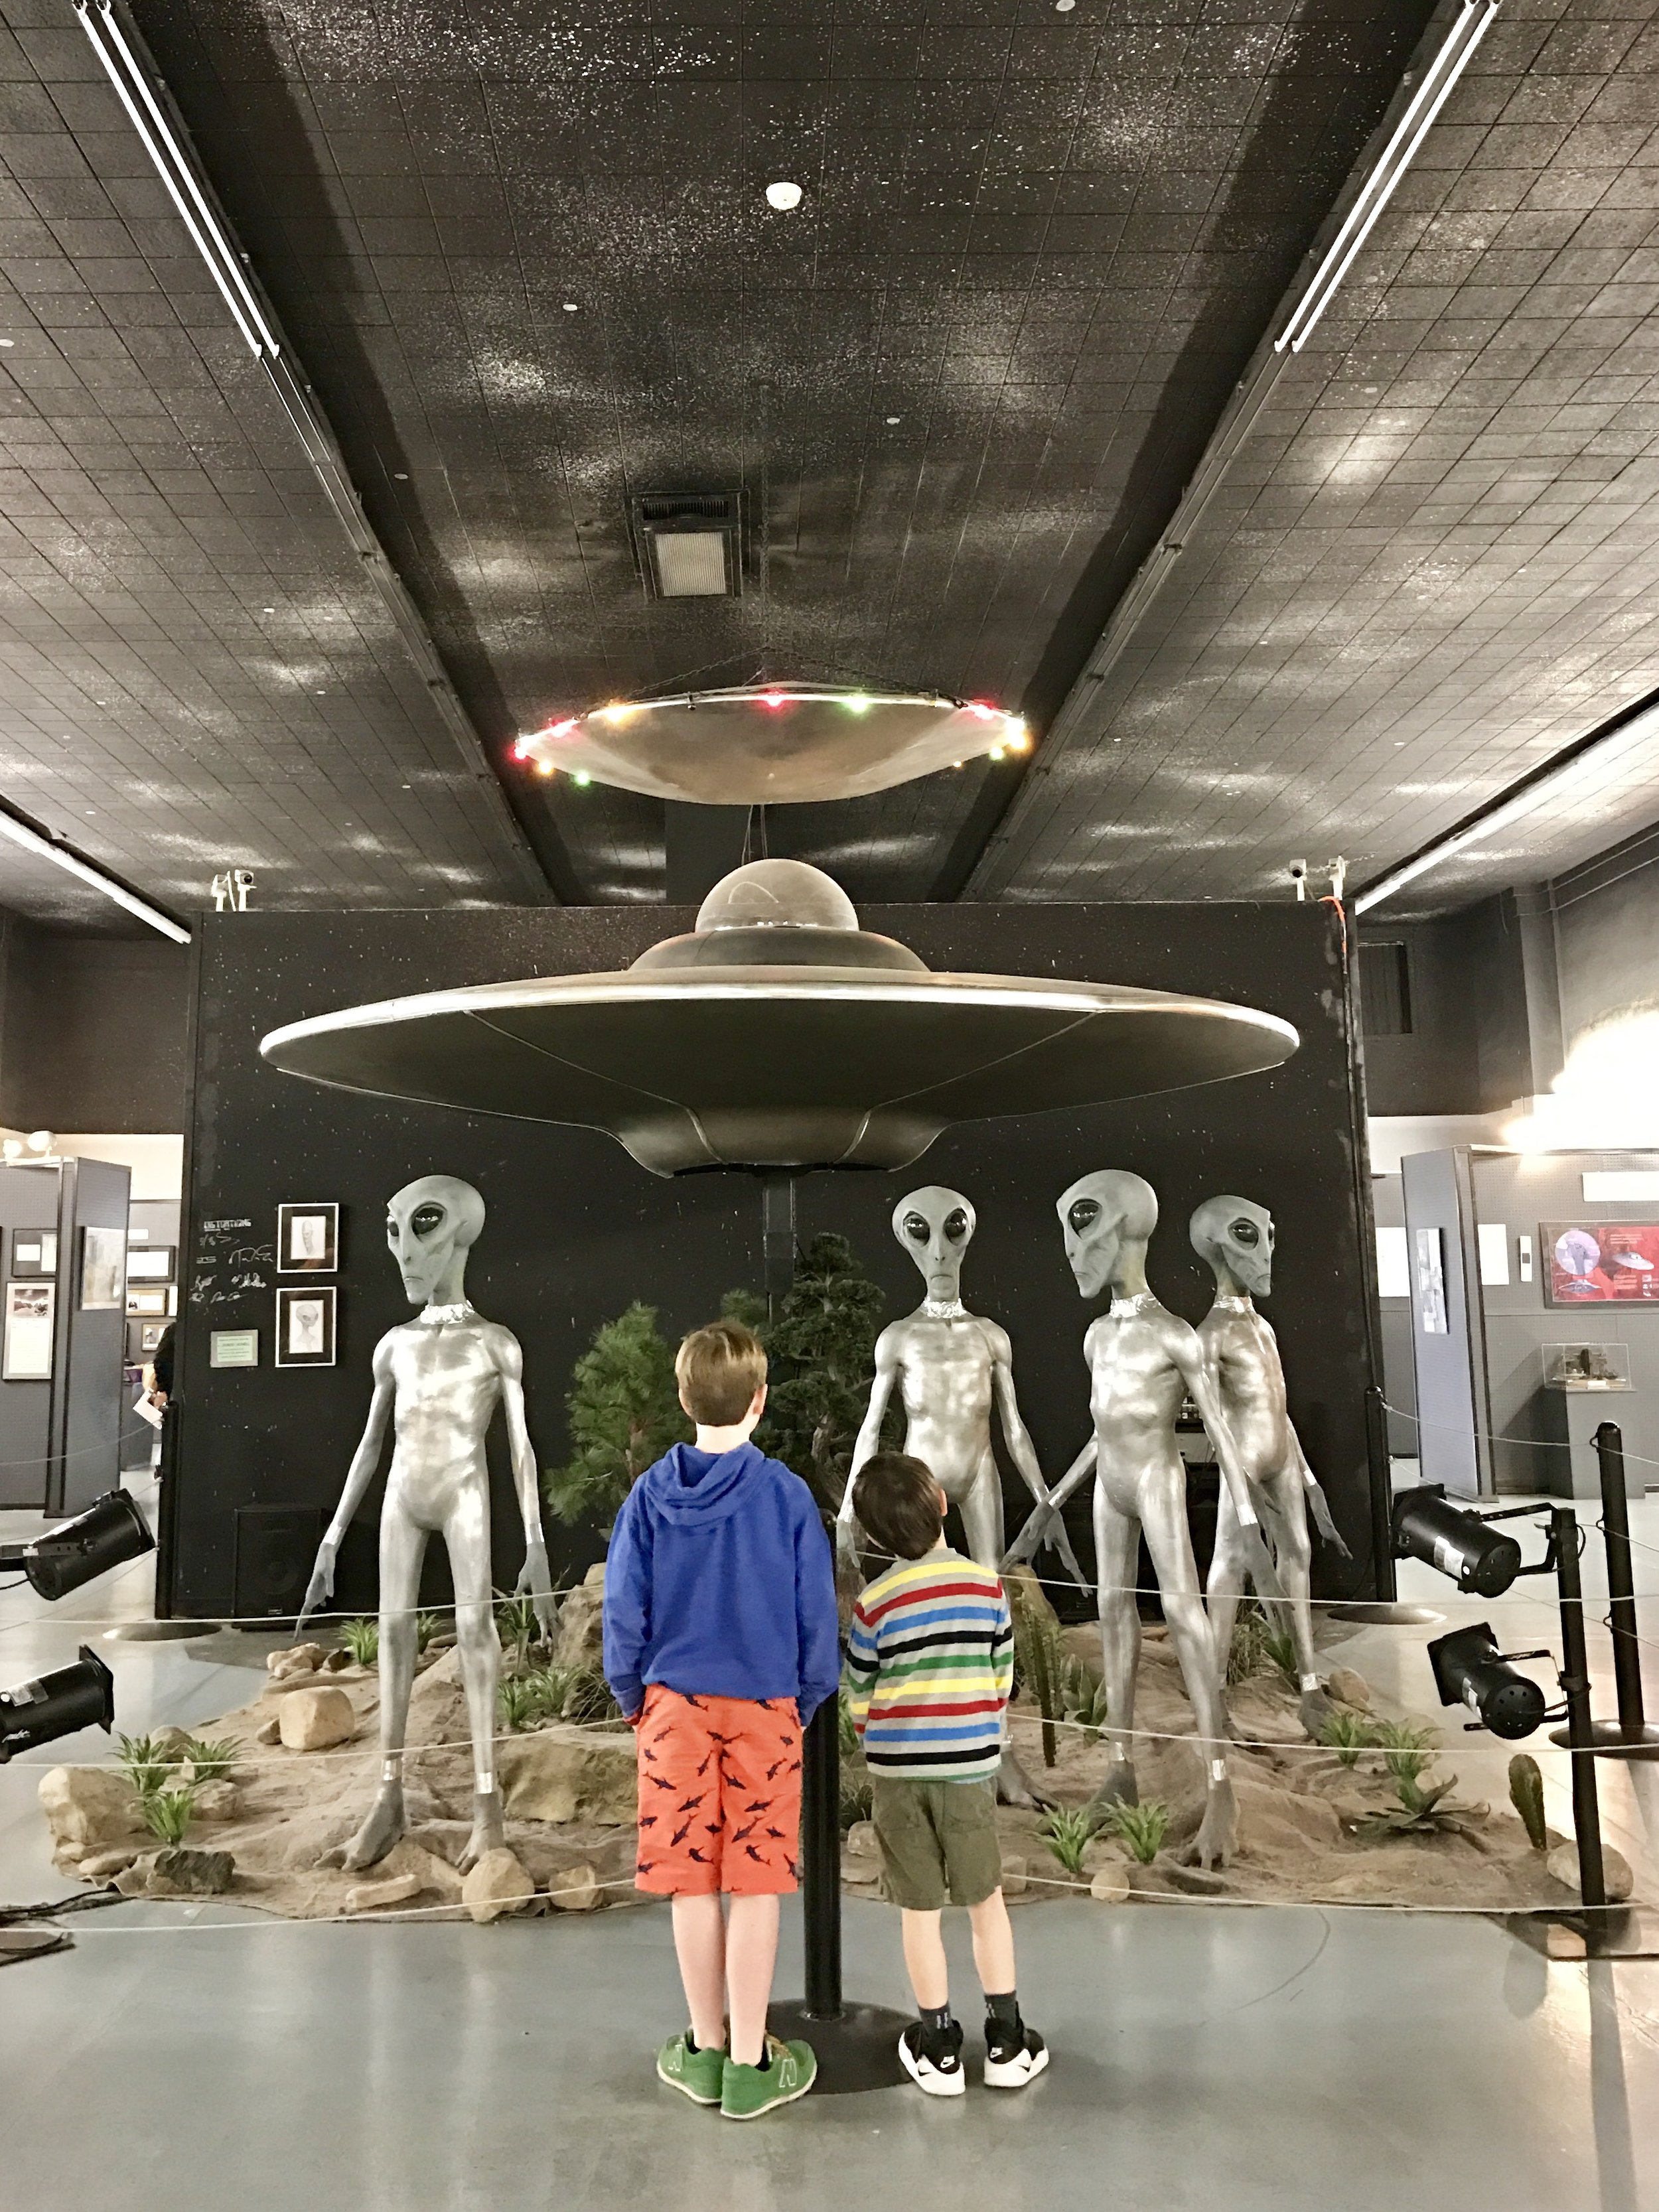 UFO Museum in Roswell, NM